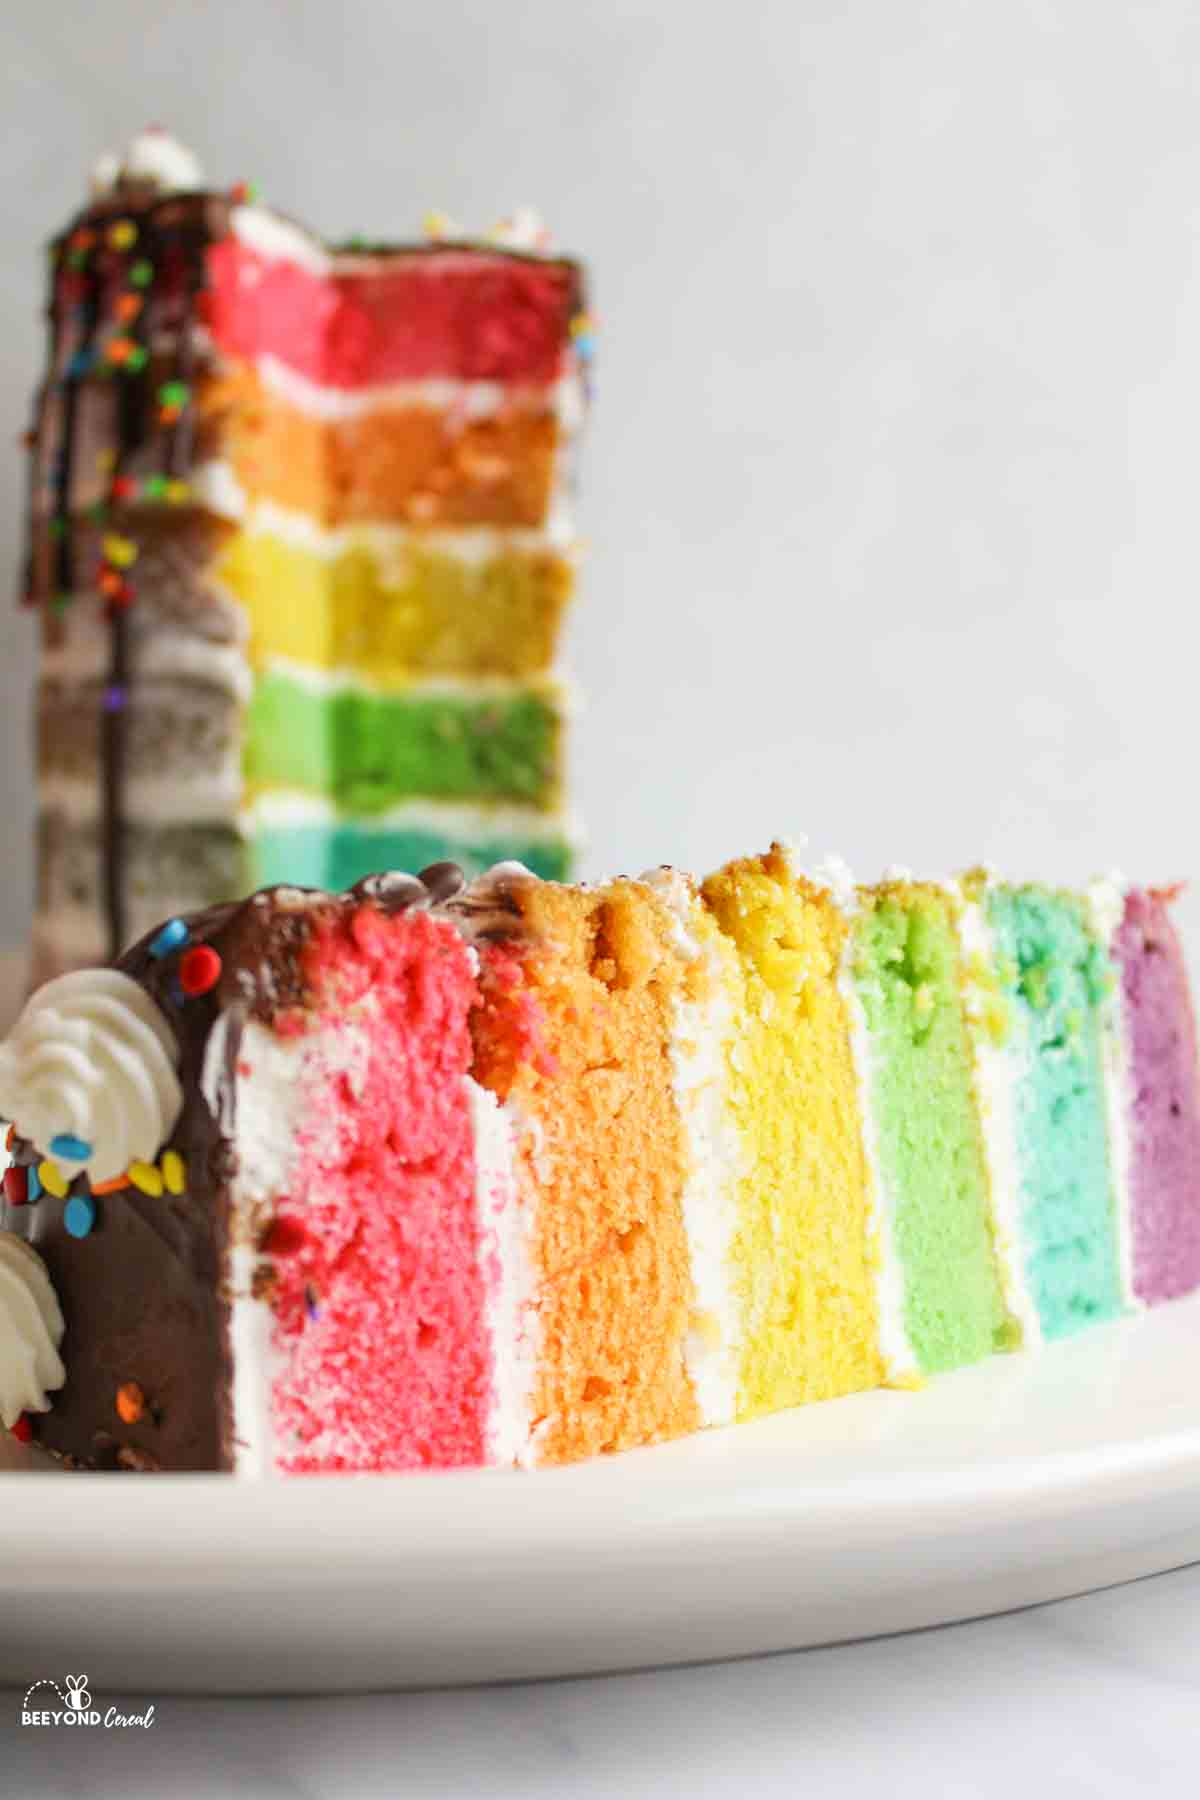 a slice of cake laying down in front of a remaining cake towering in background